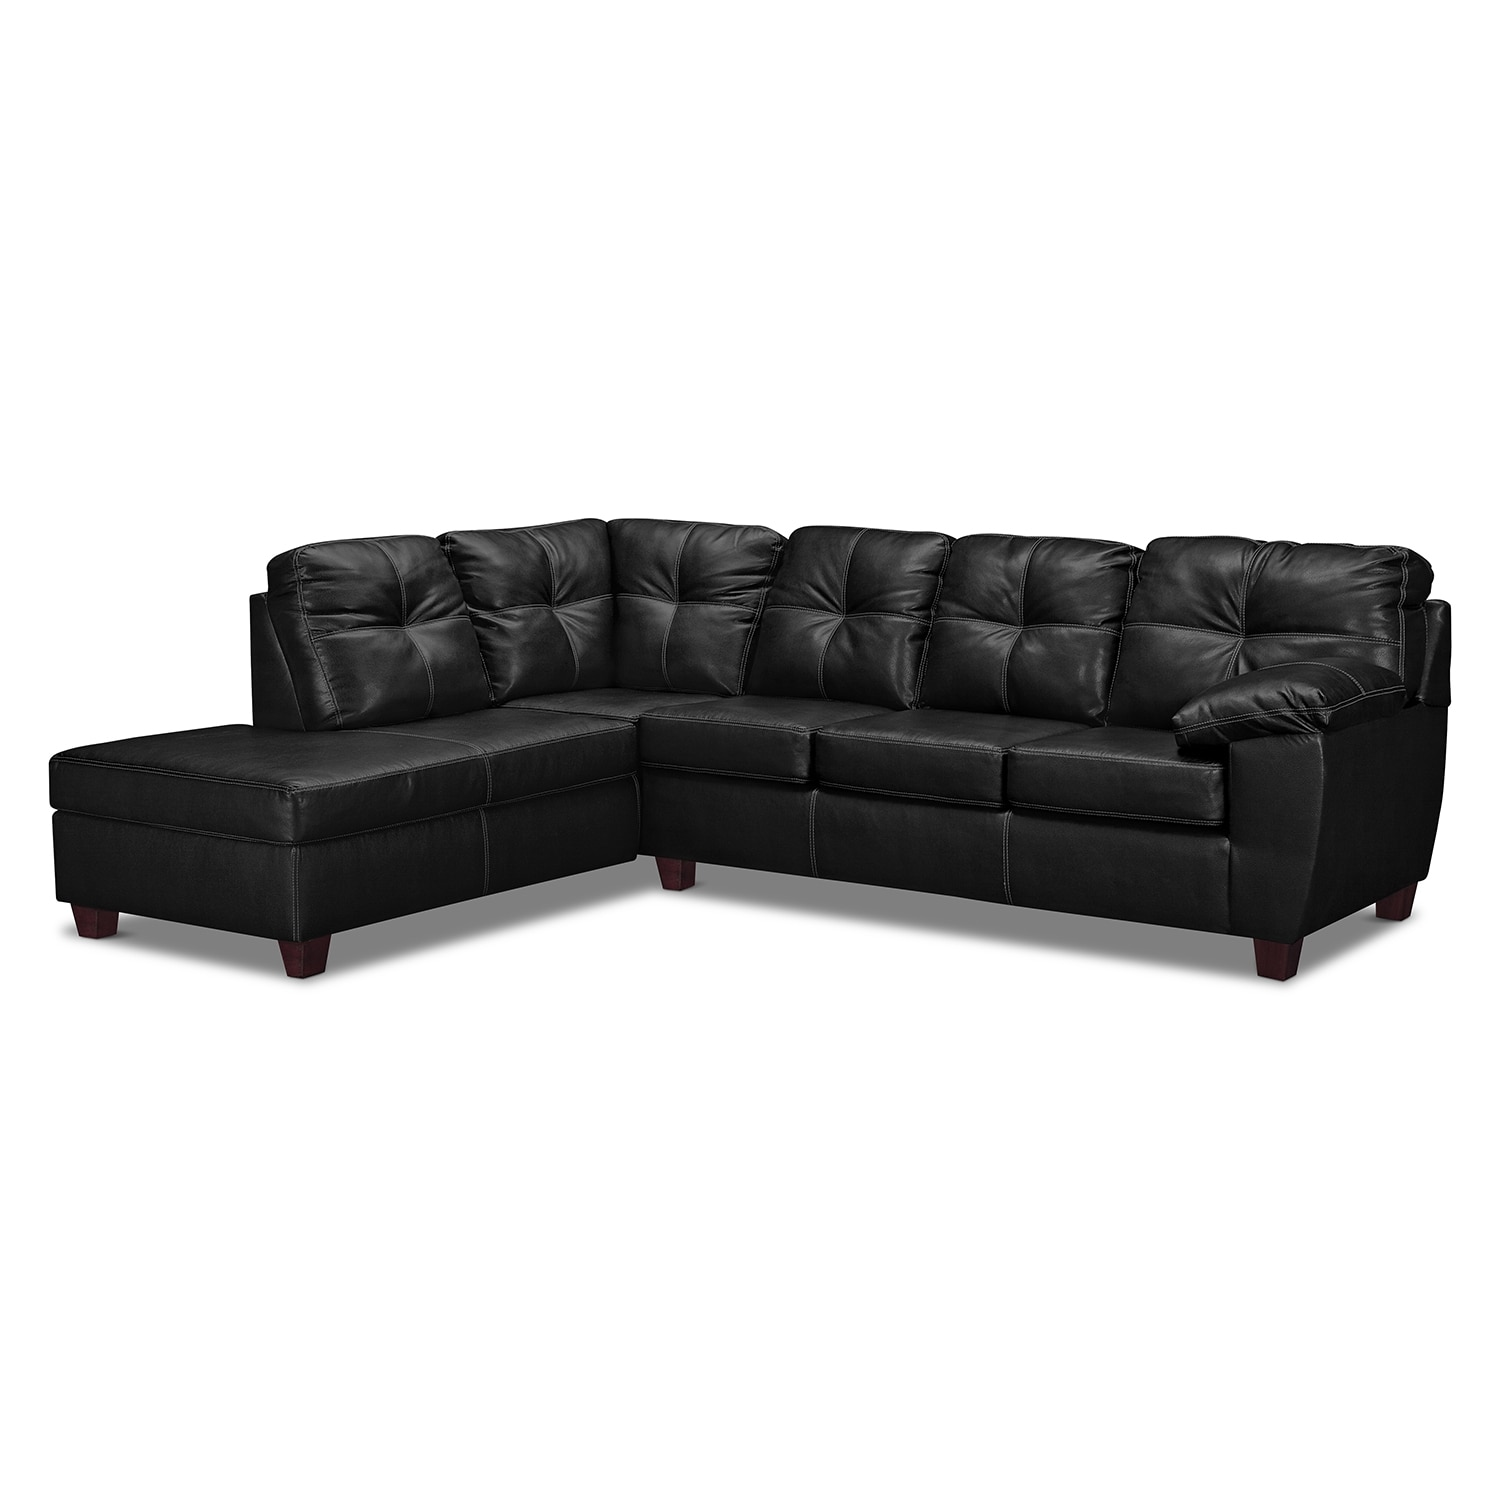 Rialto Onyx 2 Pc. Innerspring Sleeper Sectional with Left-Facing Chaise